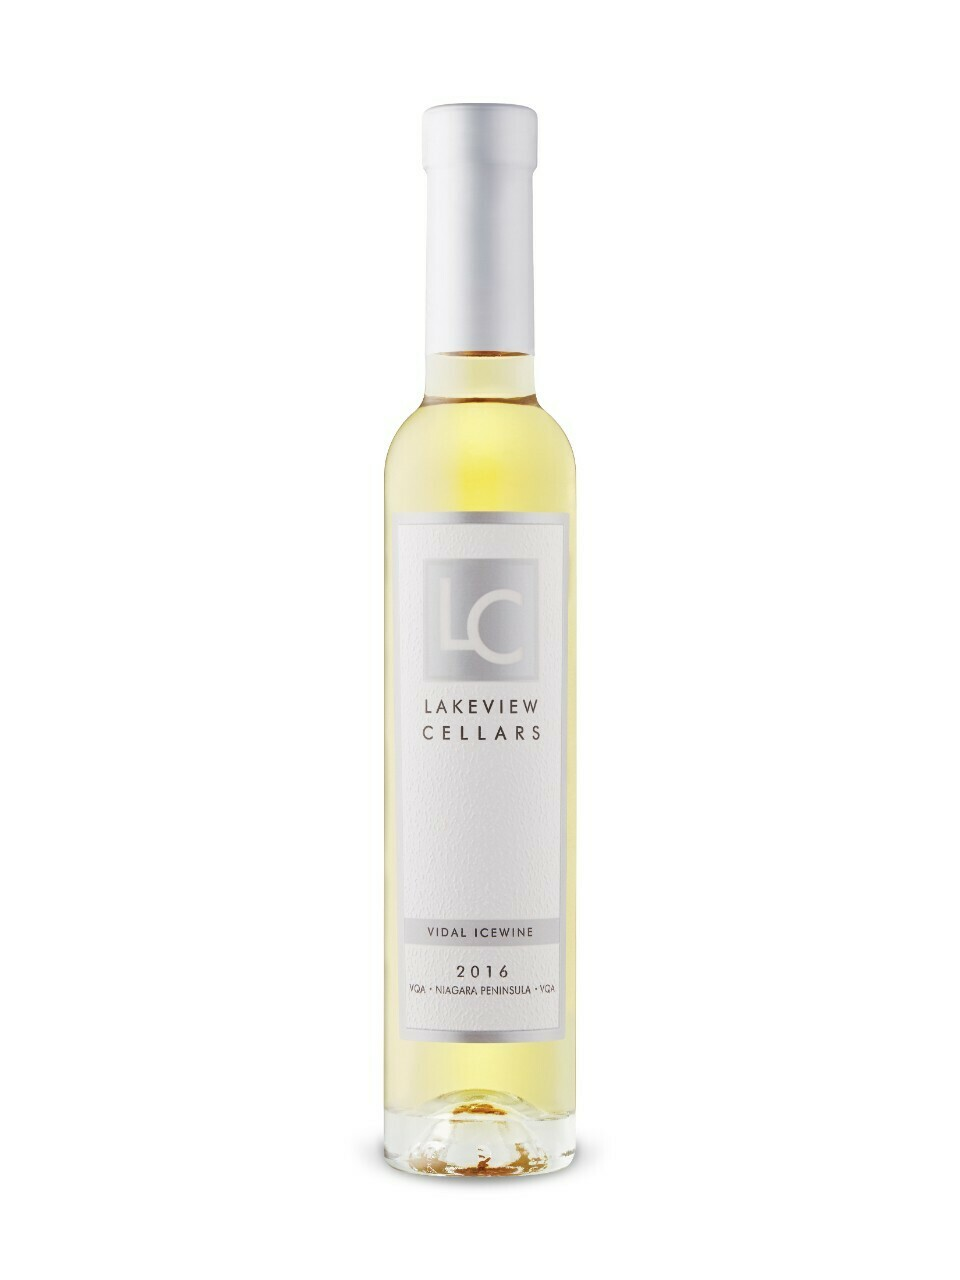 Lakeview Cellars Vidal Icewine